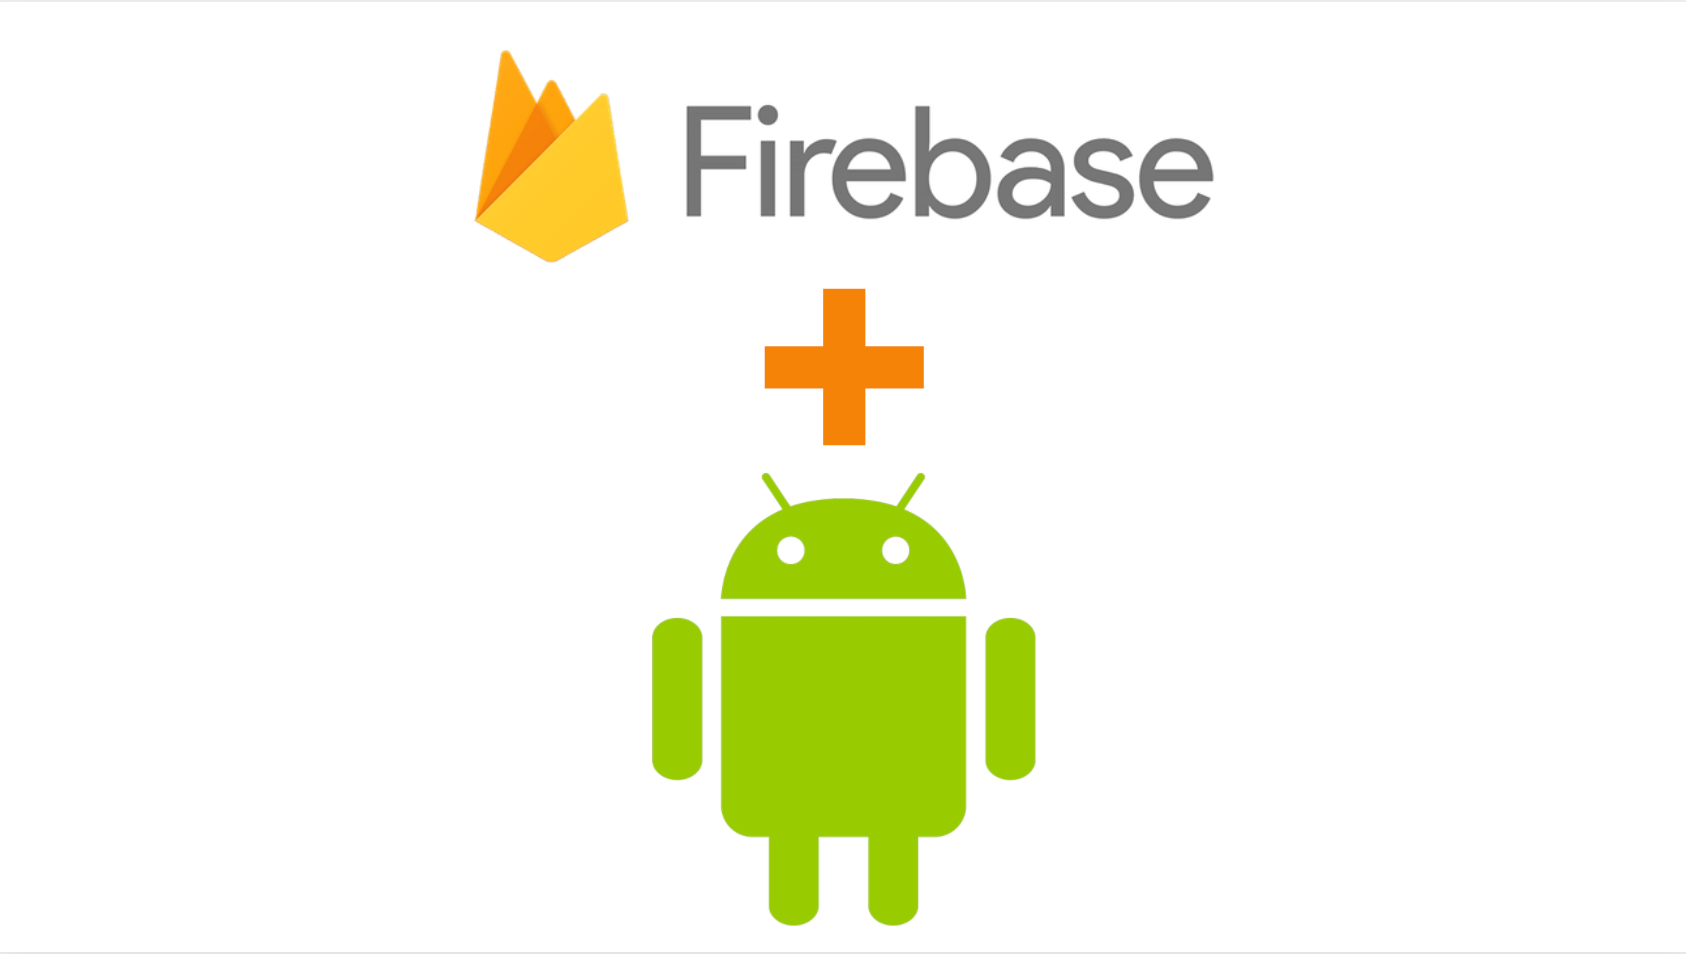 How To Integrate Firebase In Android Applications